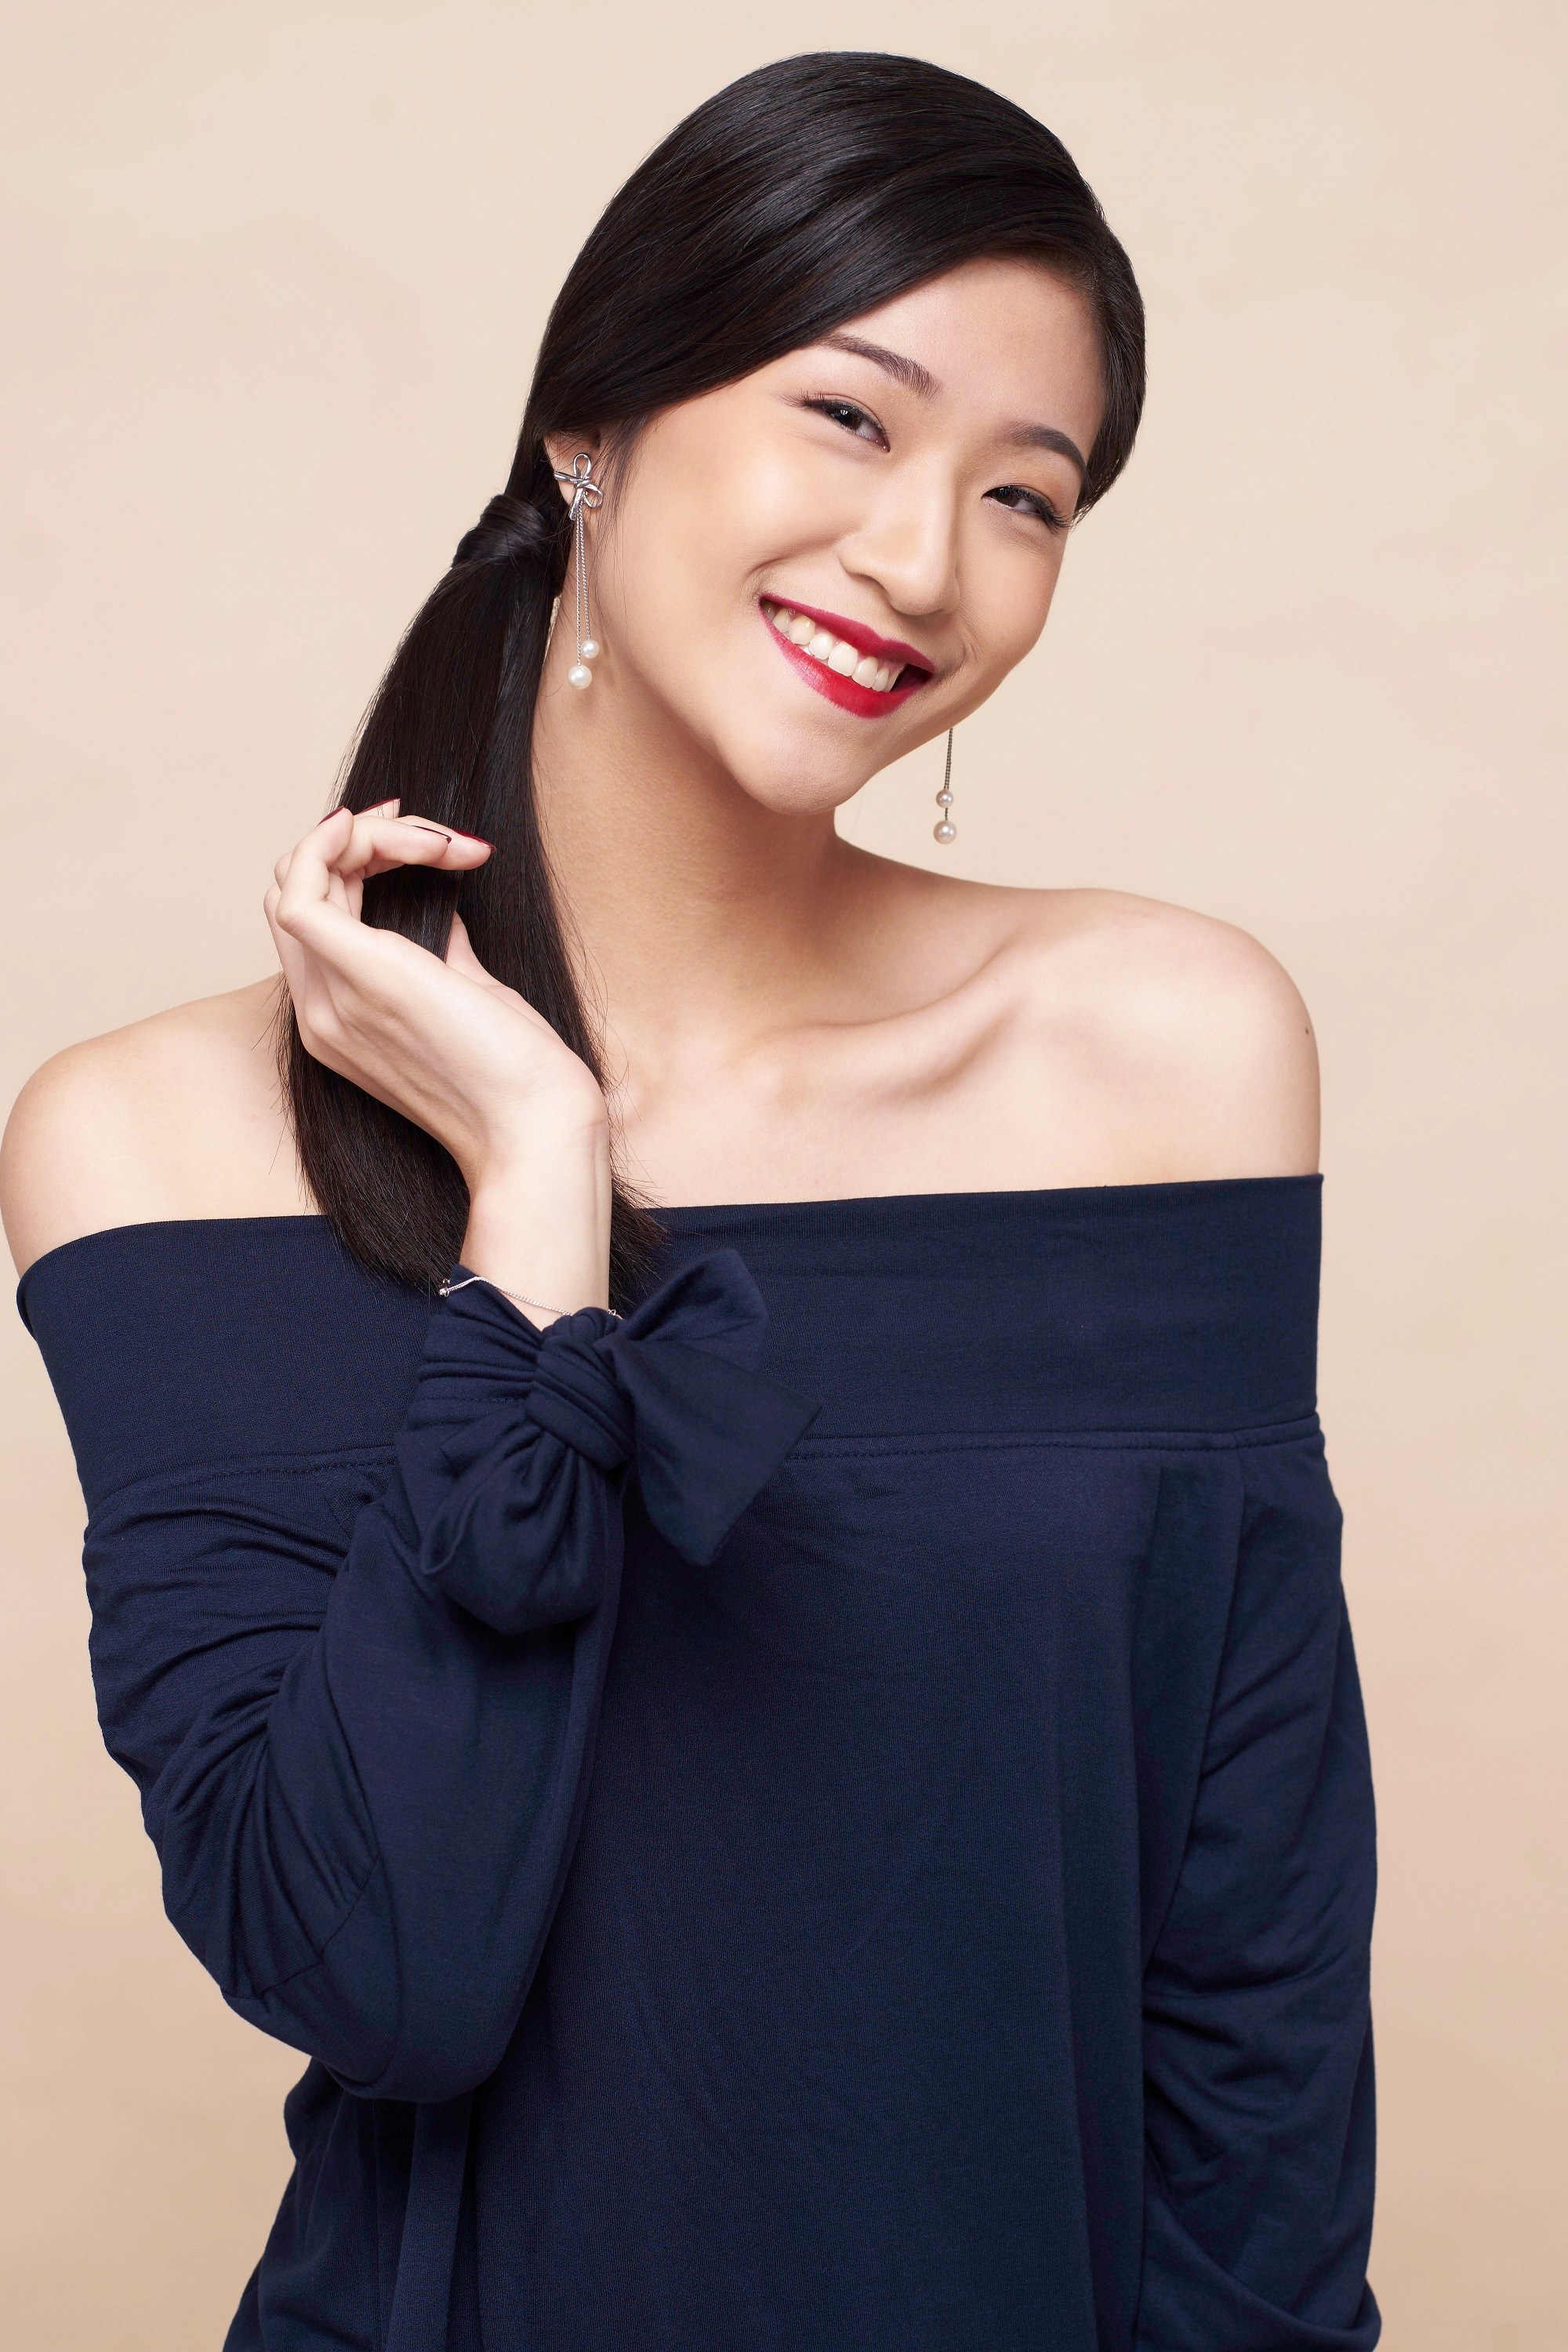 Easy commuter-friendly hairstyles: Asian woman with long black hair in a side ponytail wearing a dark blue off-shoulder top